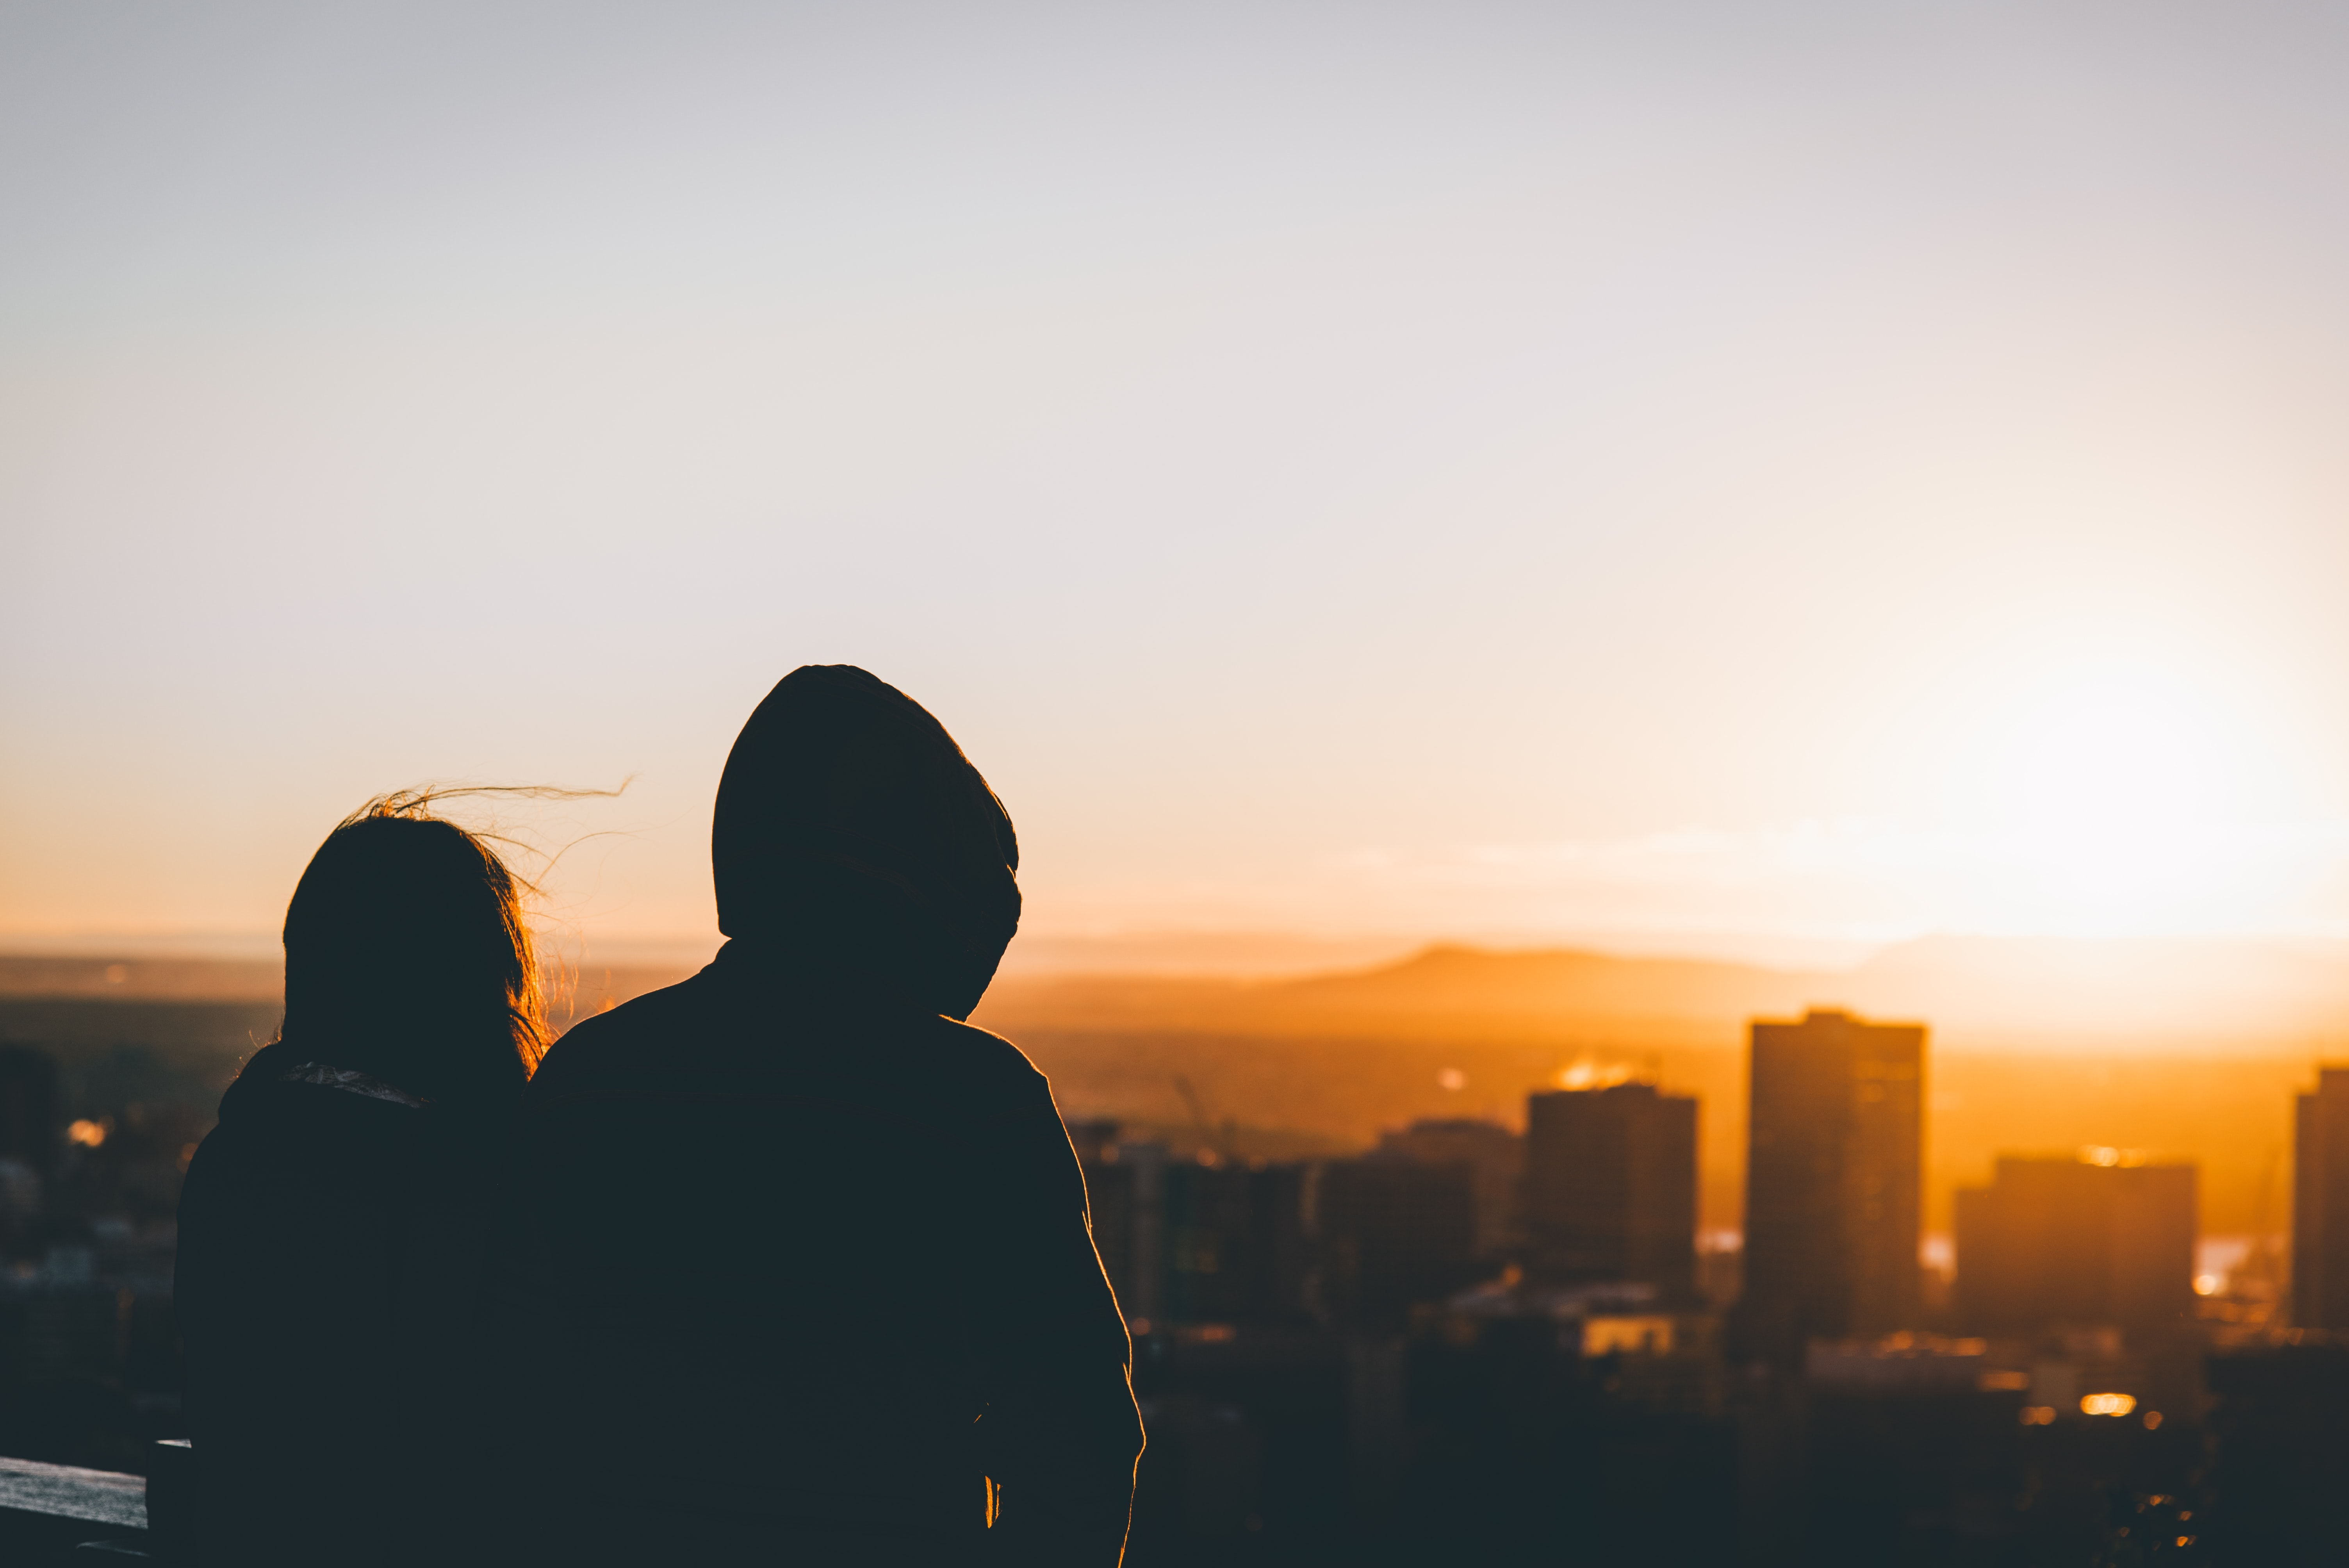 Silhouettes of two people looking over a cityscape during sunset